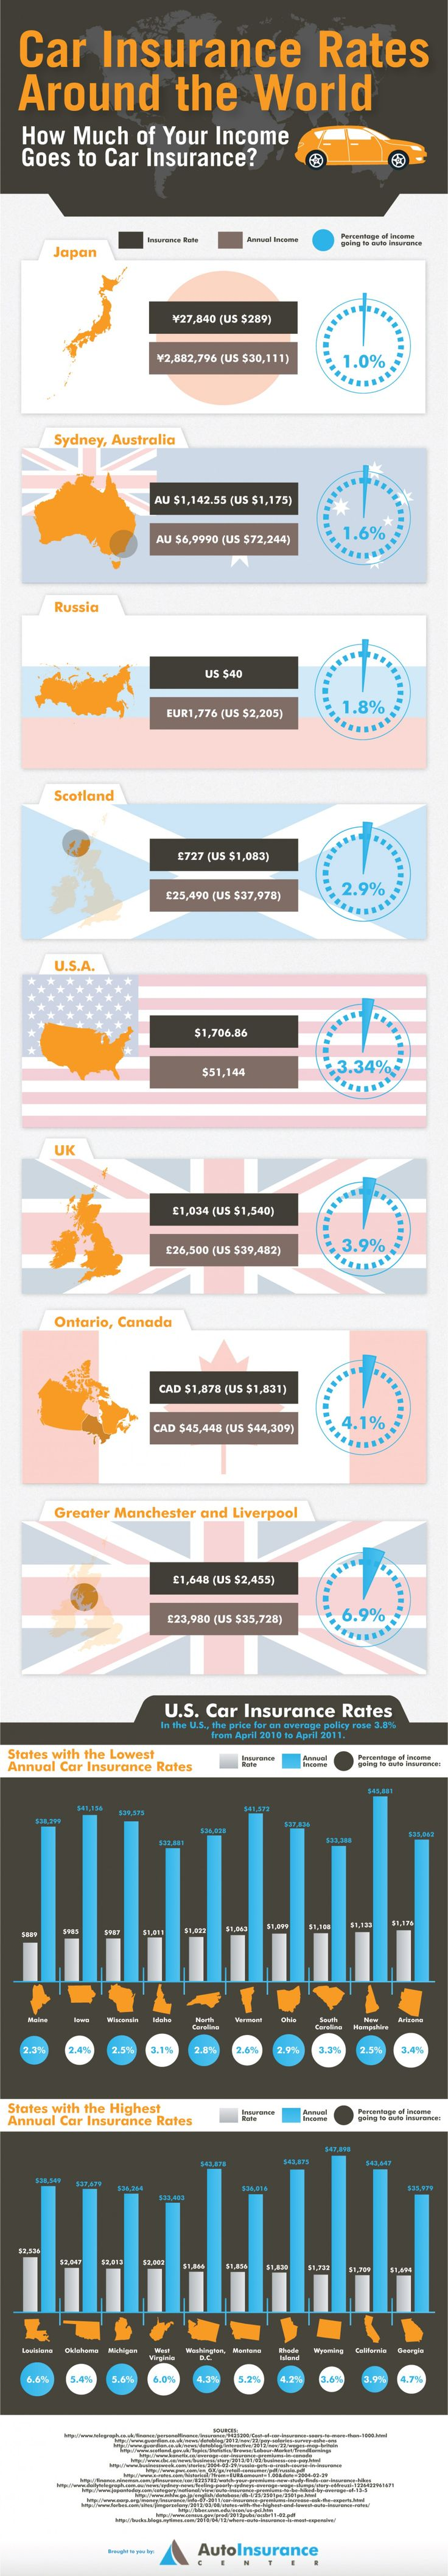 Car insurance rates around the world for more information or a quote on your auto